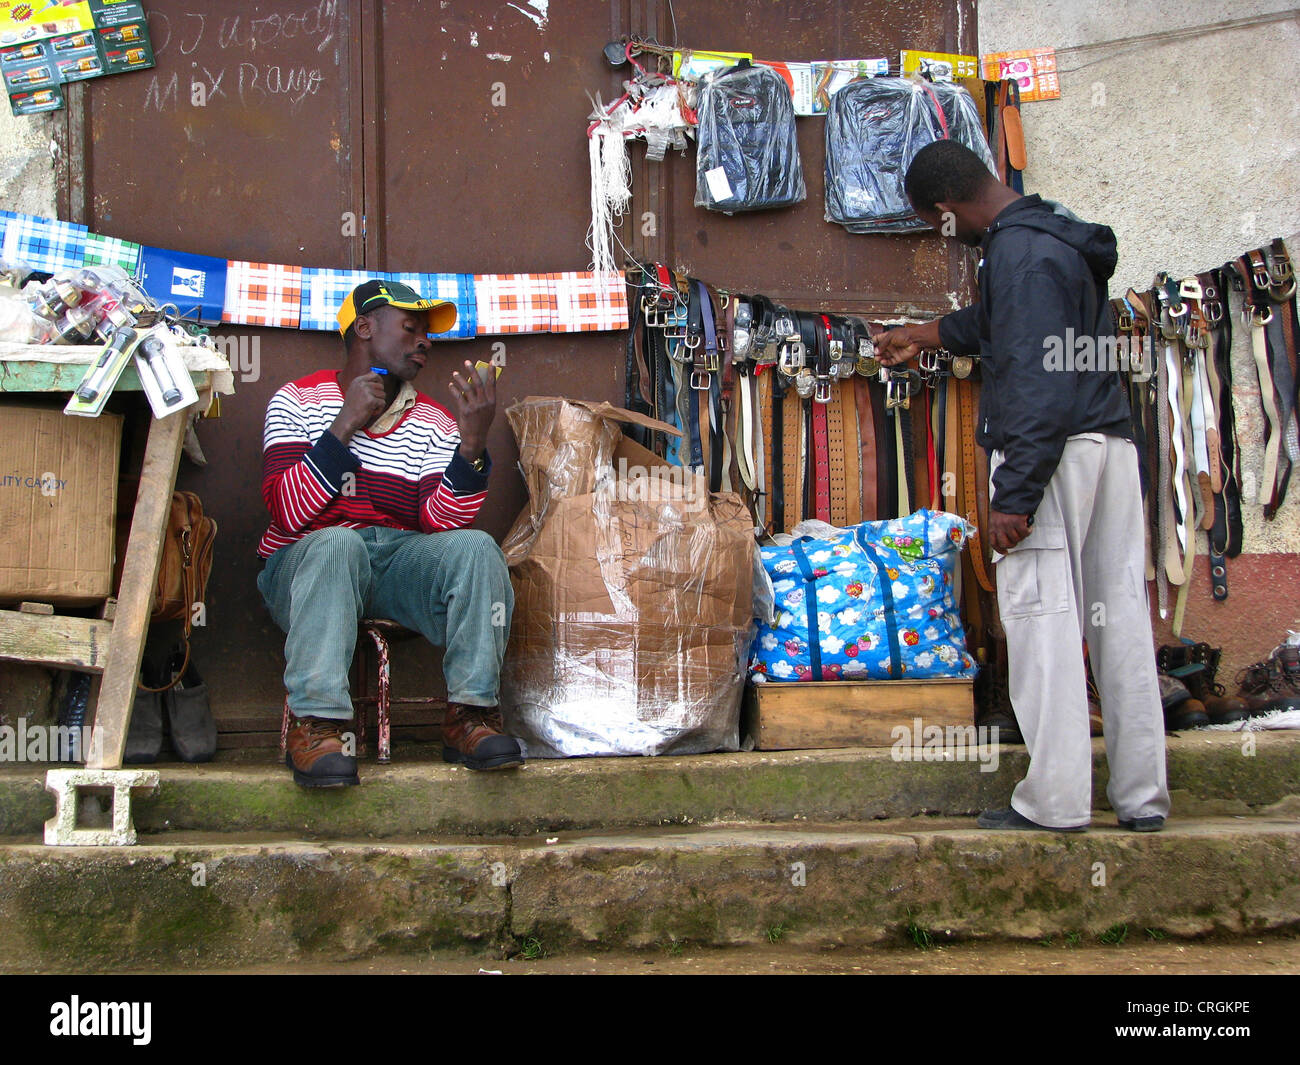 young man sitting at his general merchandise sales booth shaving dry, another , Haiti, Province de l'Ouest, - Stock Image